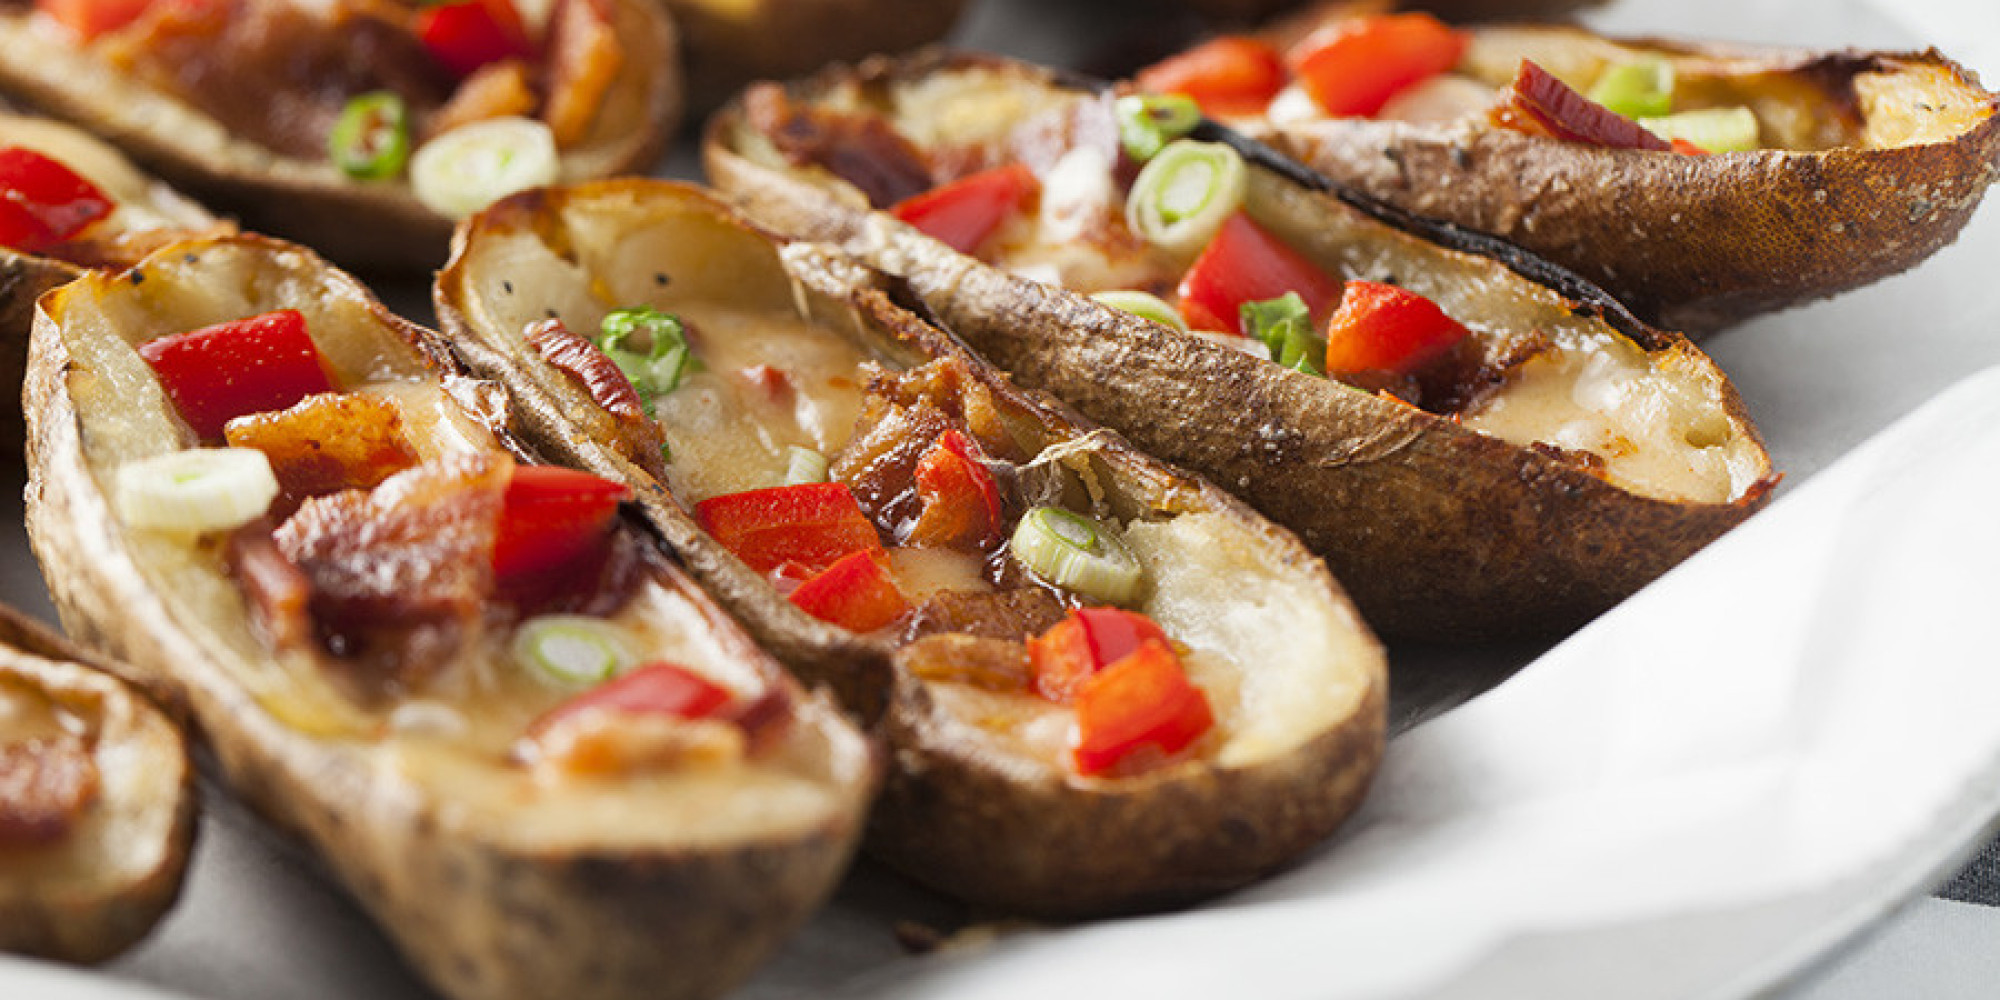 Potato Skin Recipes  Potato Skin Recipes Just Keep Getting Better PHOTOS